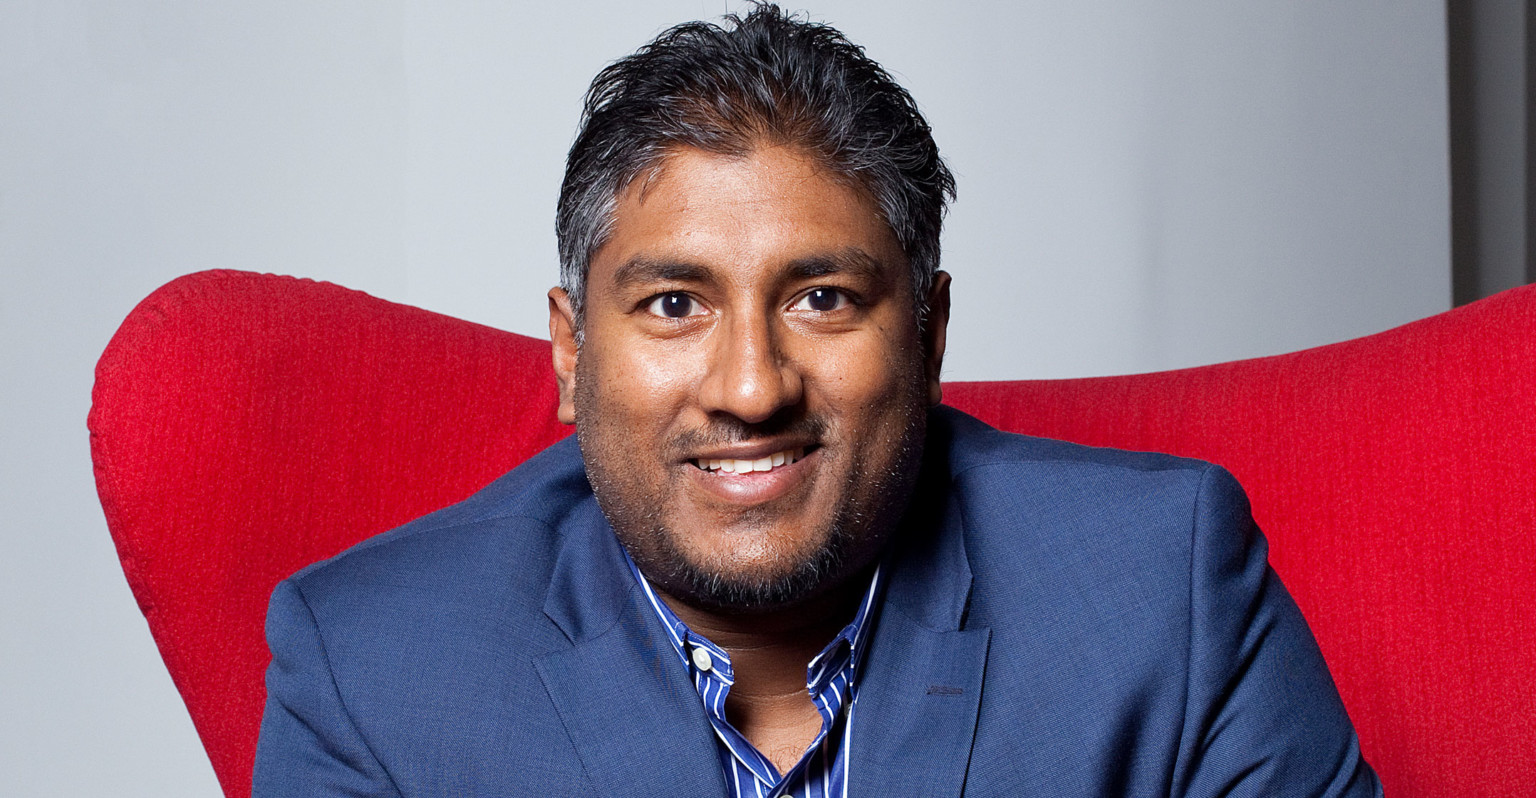 SA Investors Are Too Risk Averse: Vinny Lingham